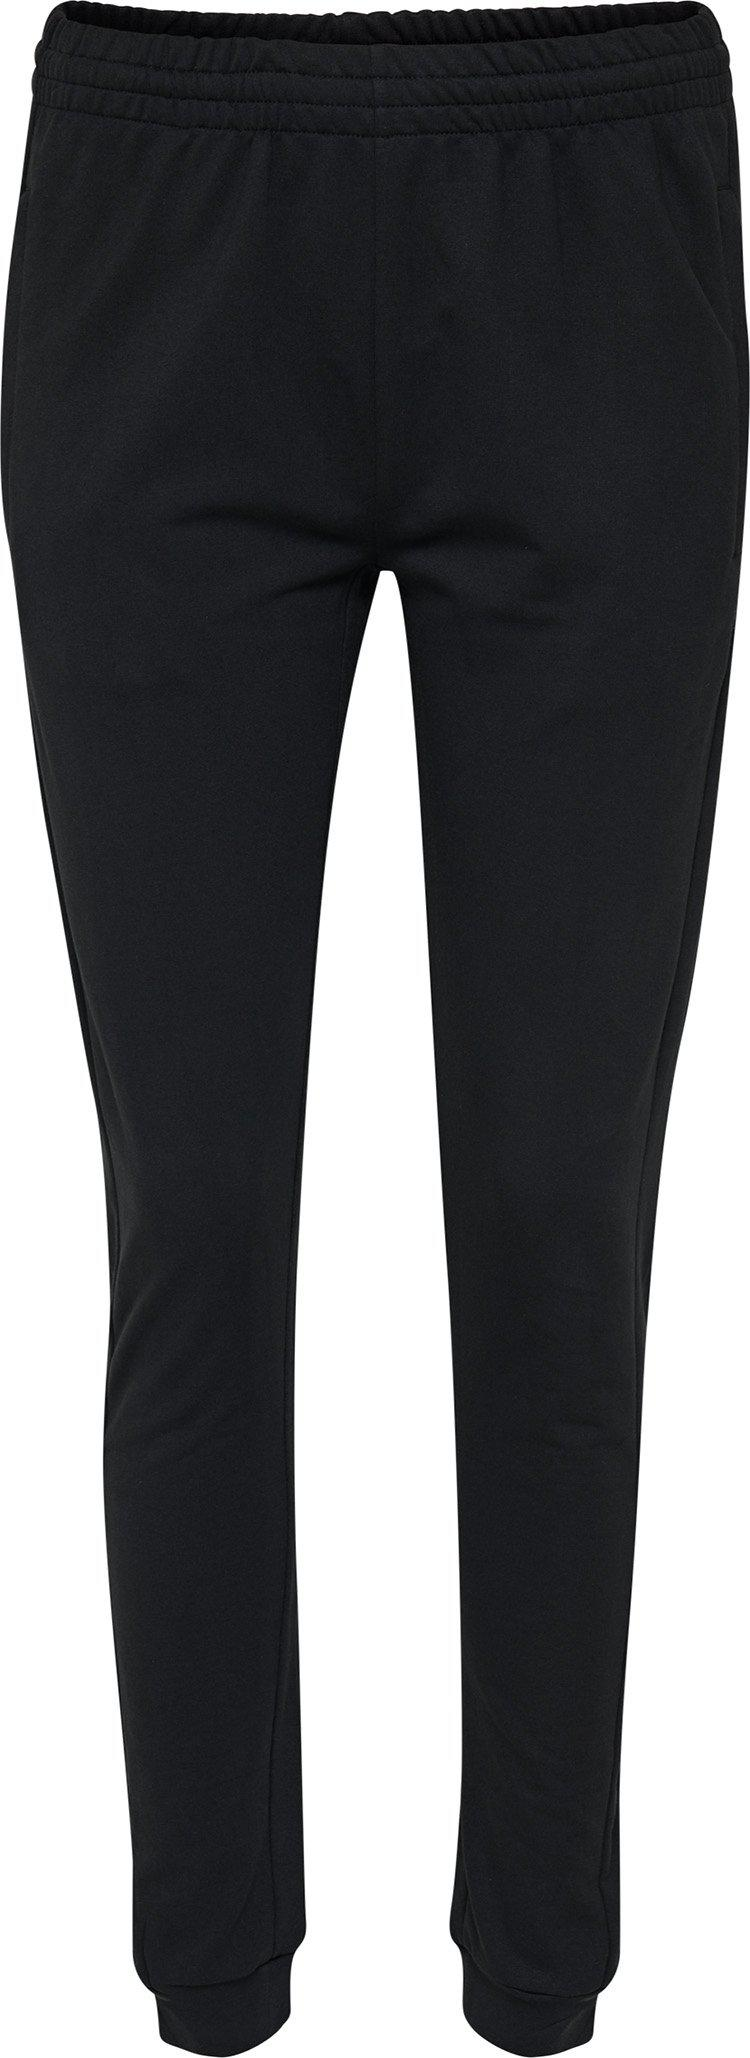 hummel Go Cotton Pants (women's)-Soccer Command